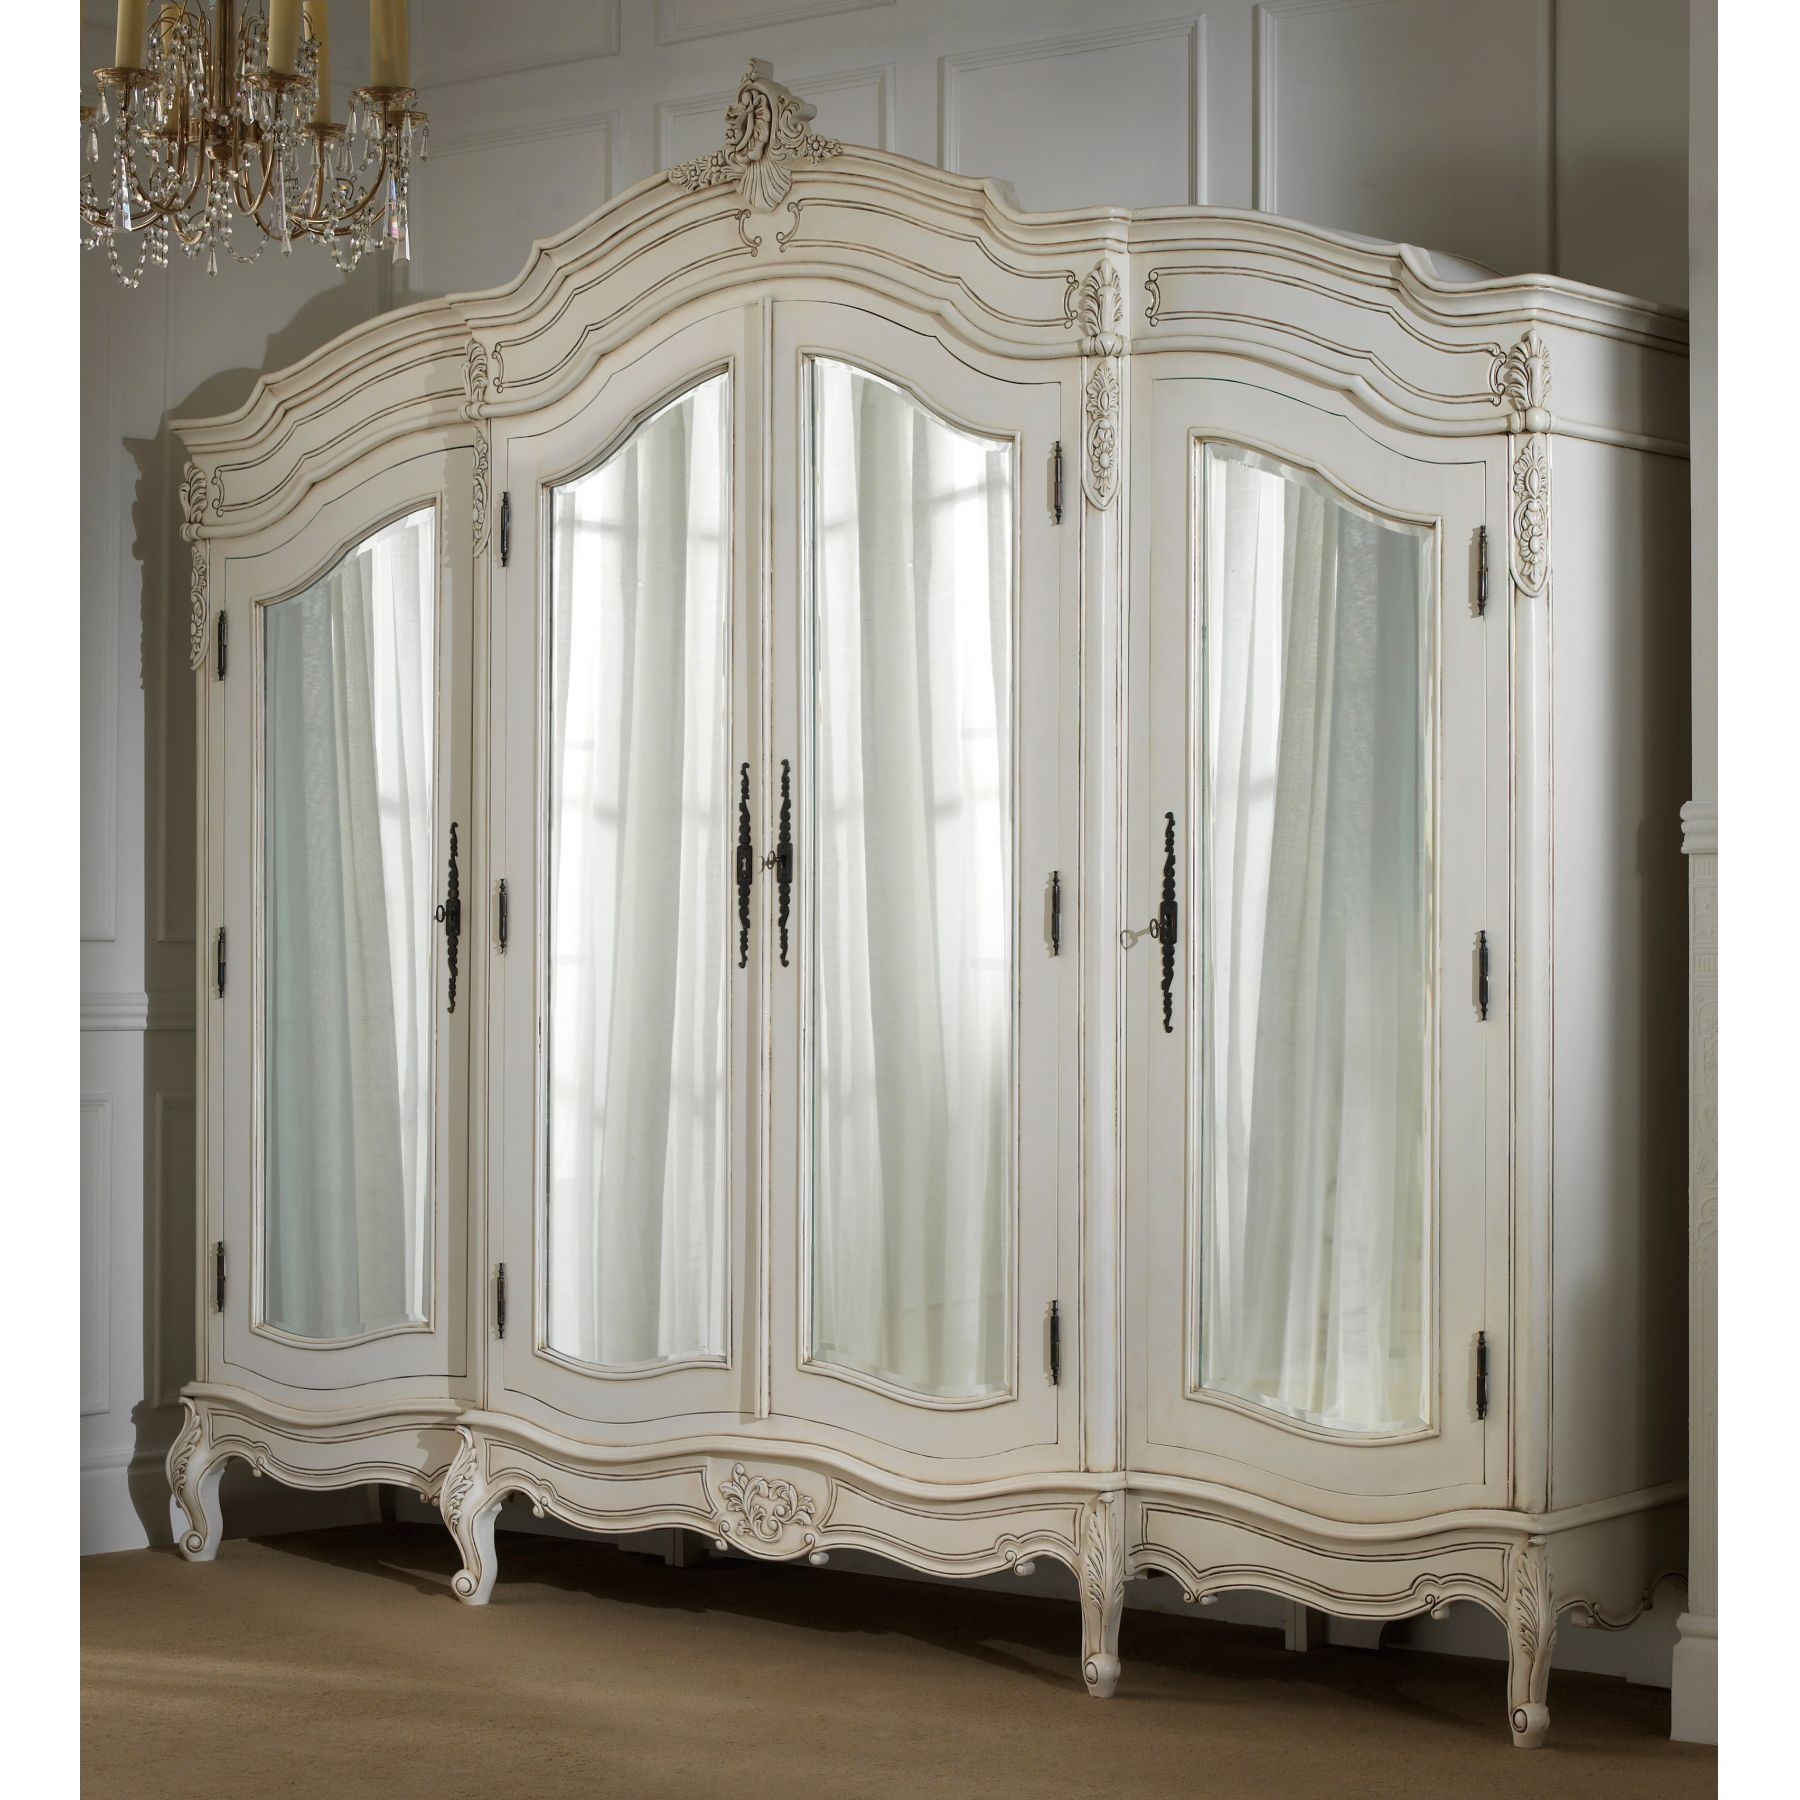 Bedroom Medium Antique White Sets Dark Hardwood Wall Expansive With Regard To Old French Mirrors (Image 8 of 15)